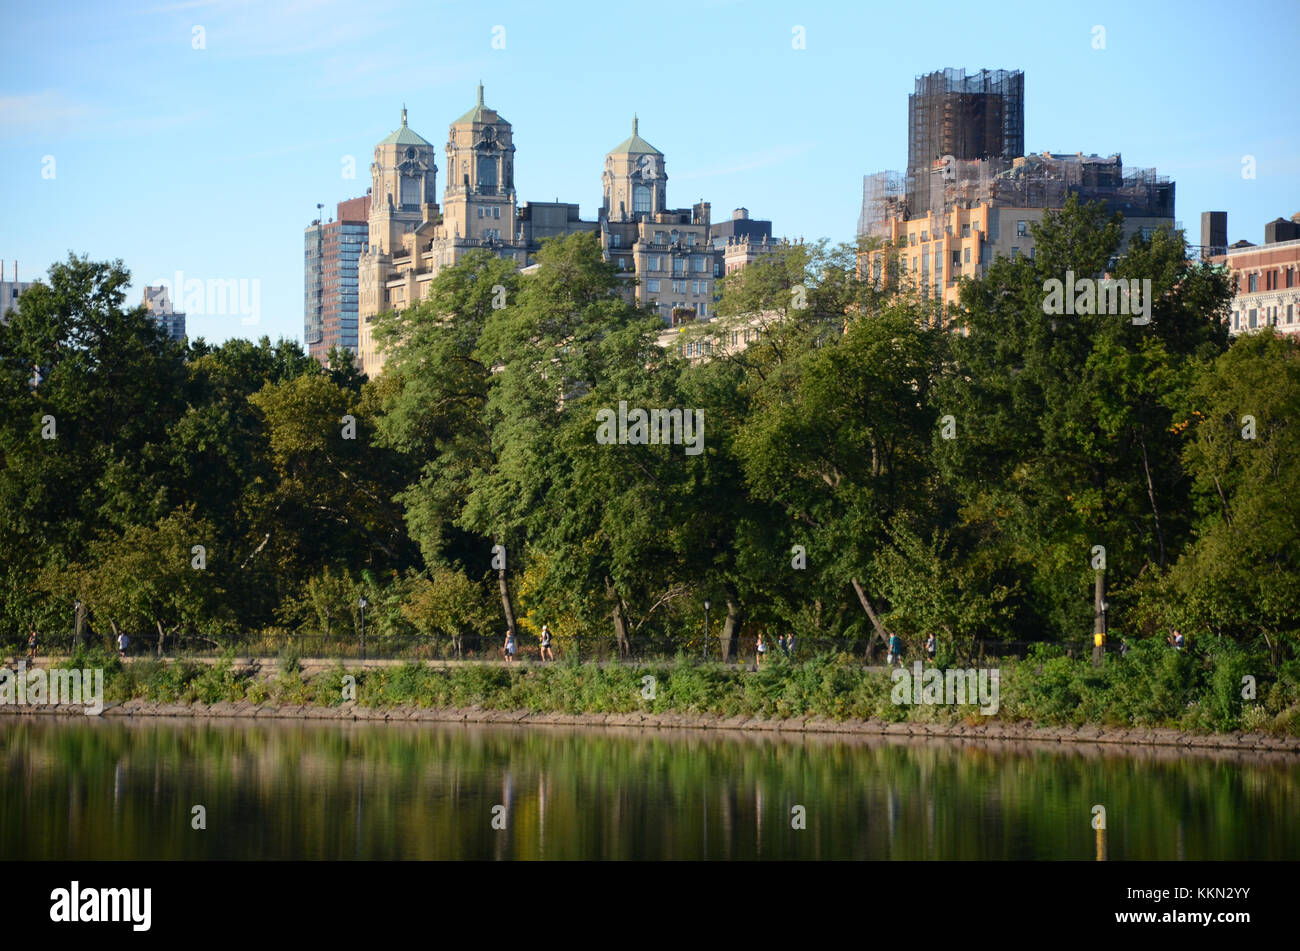 Skyscape in Central Park with the Jacqueline Kennedy-Onassis Resvoir in the foreground. - Stock Image